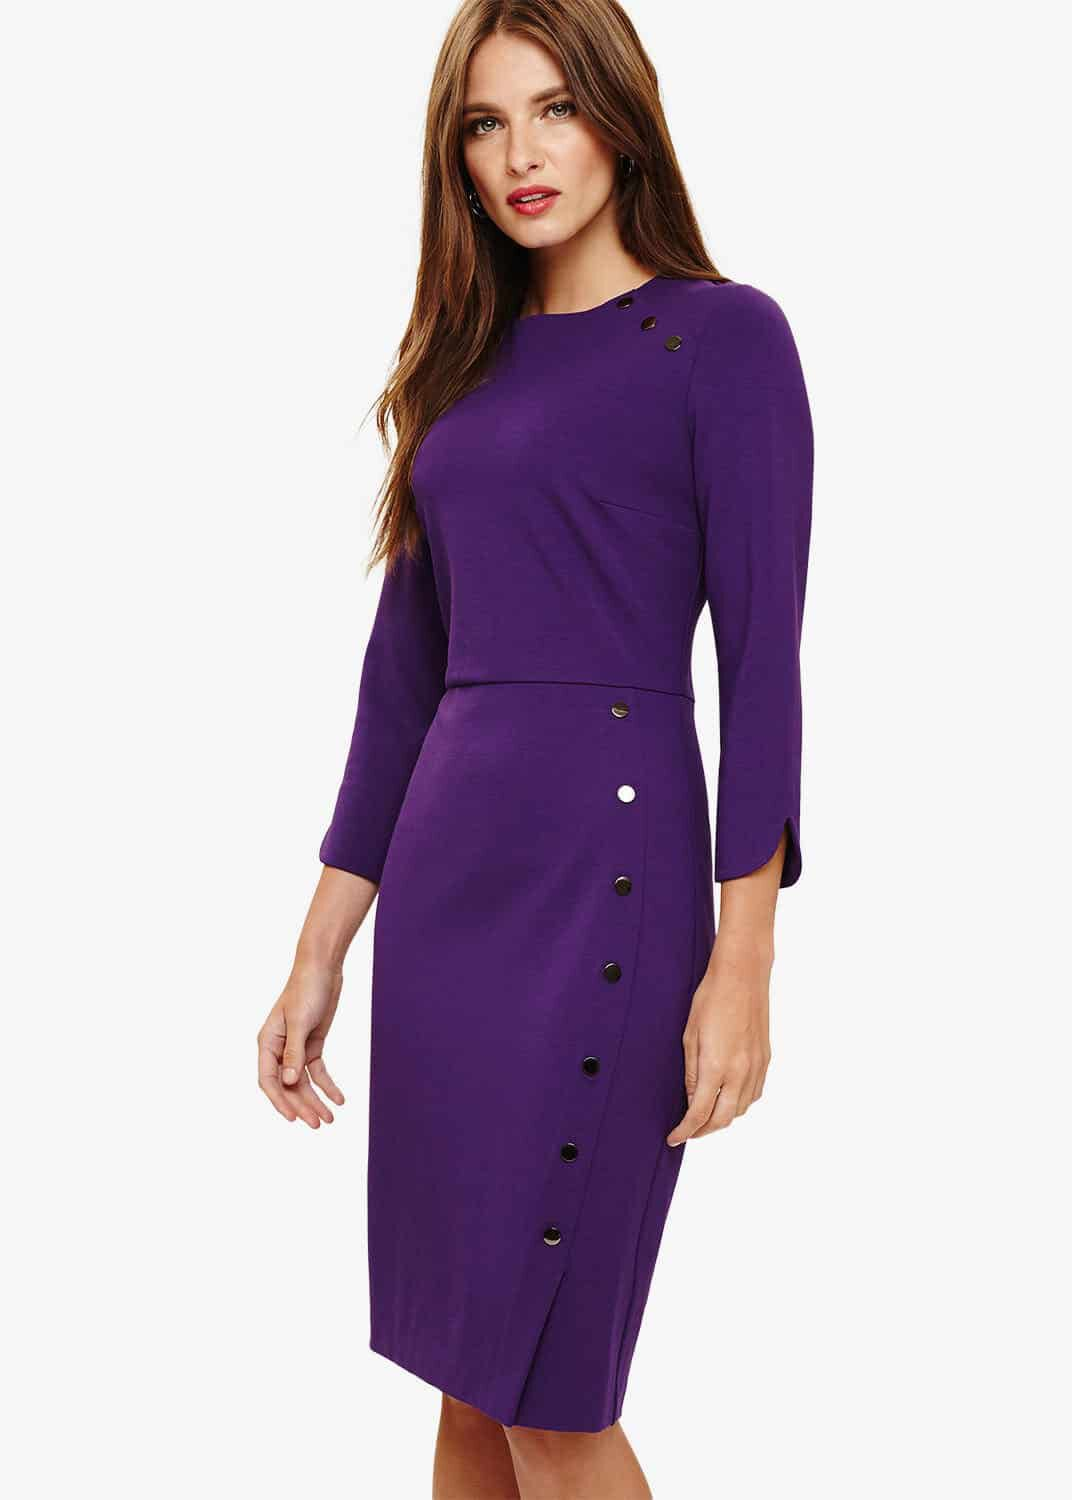 Phase Eight Leanna Dress, Purple, Fitted